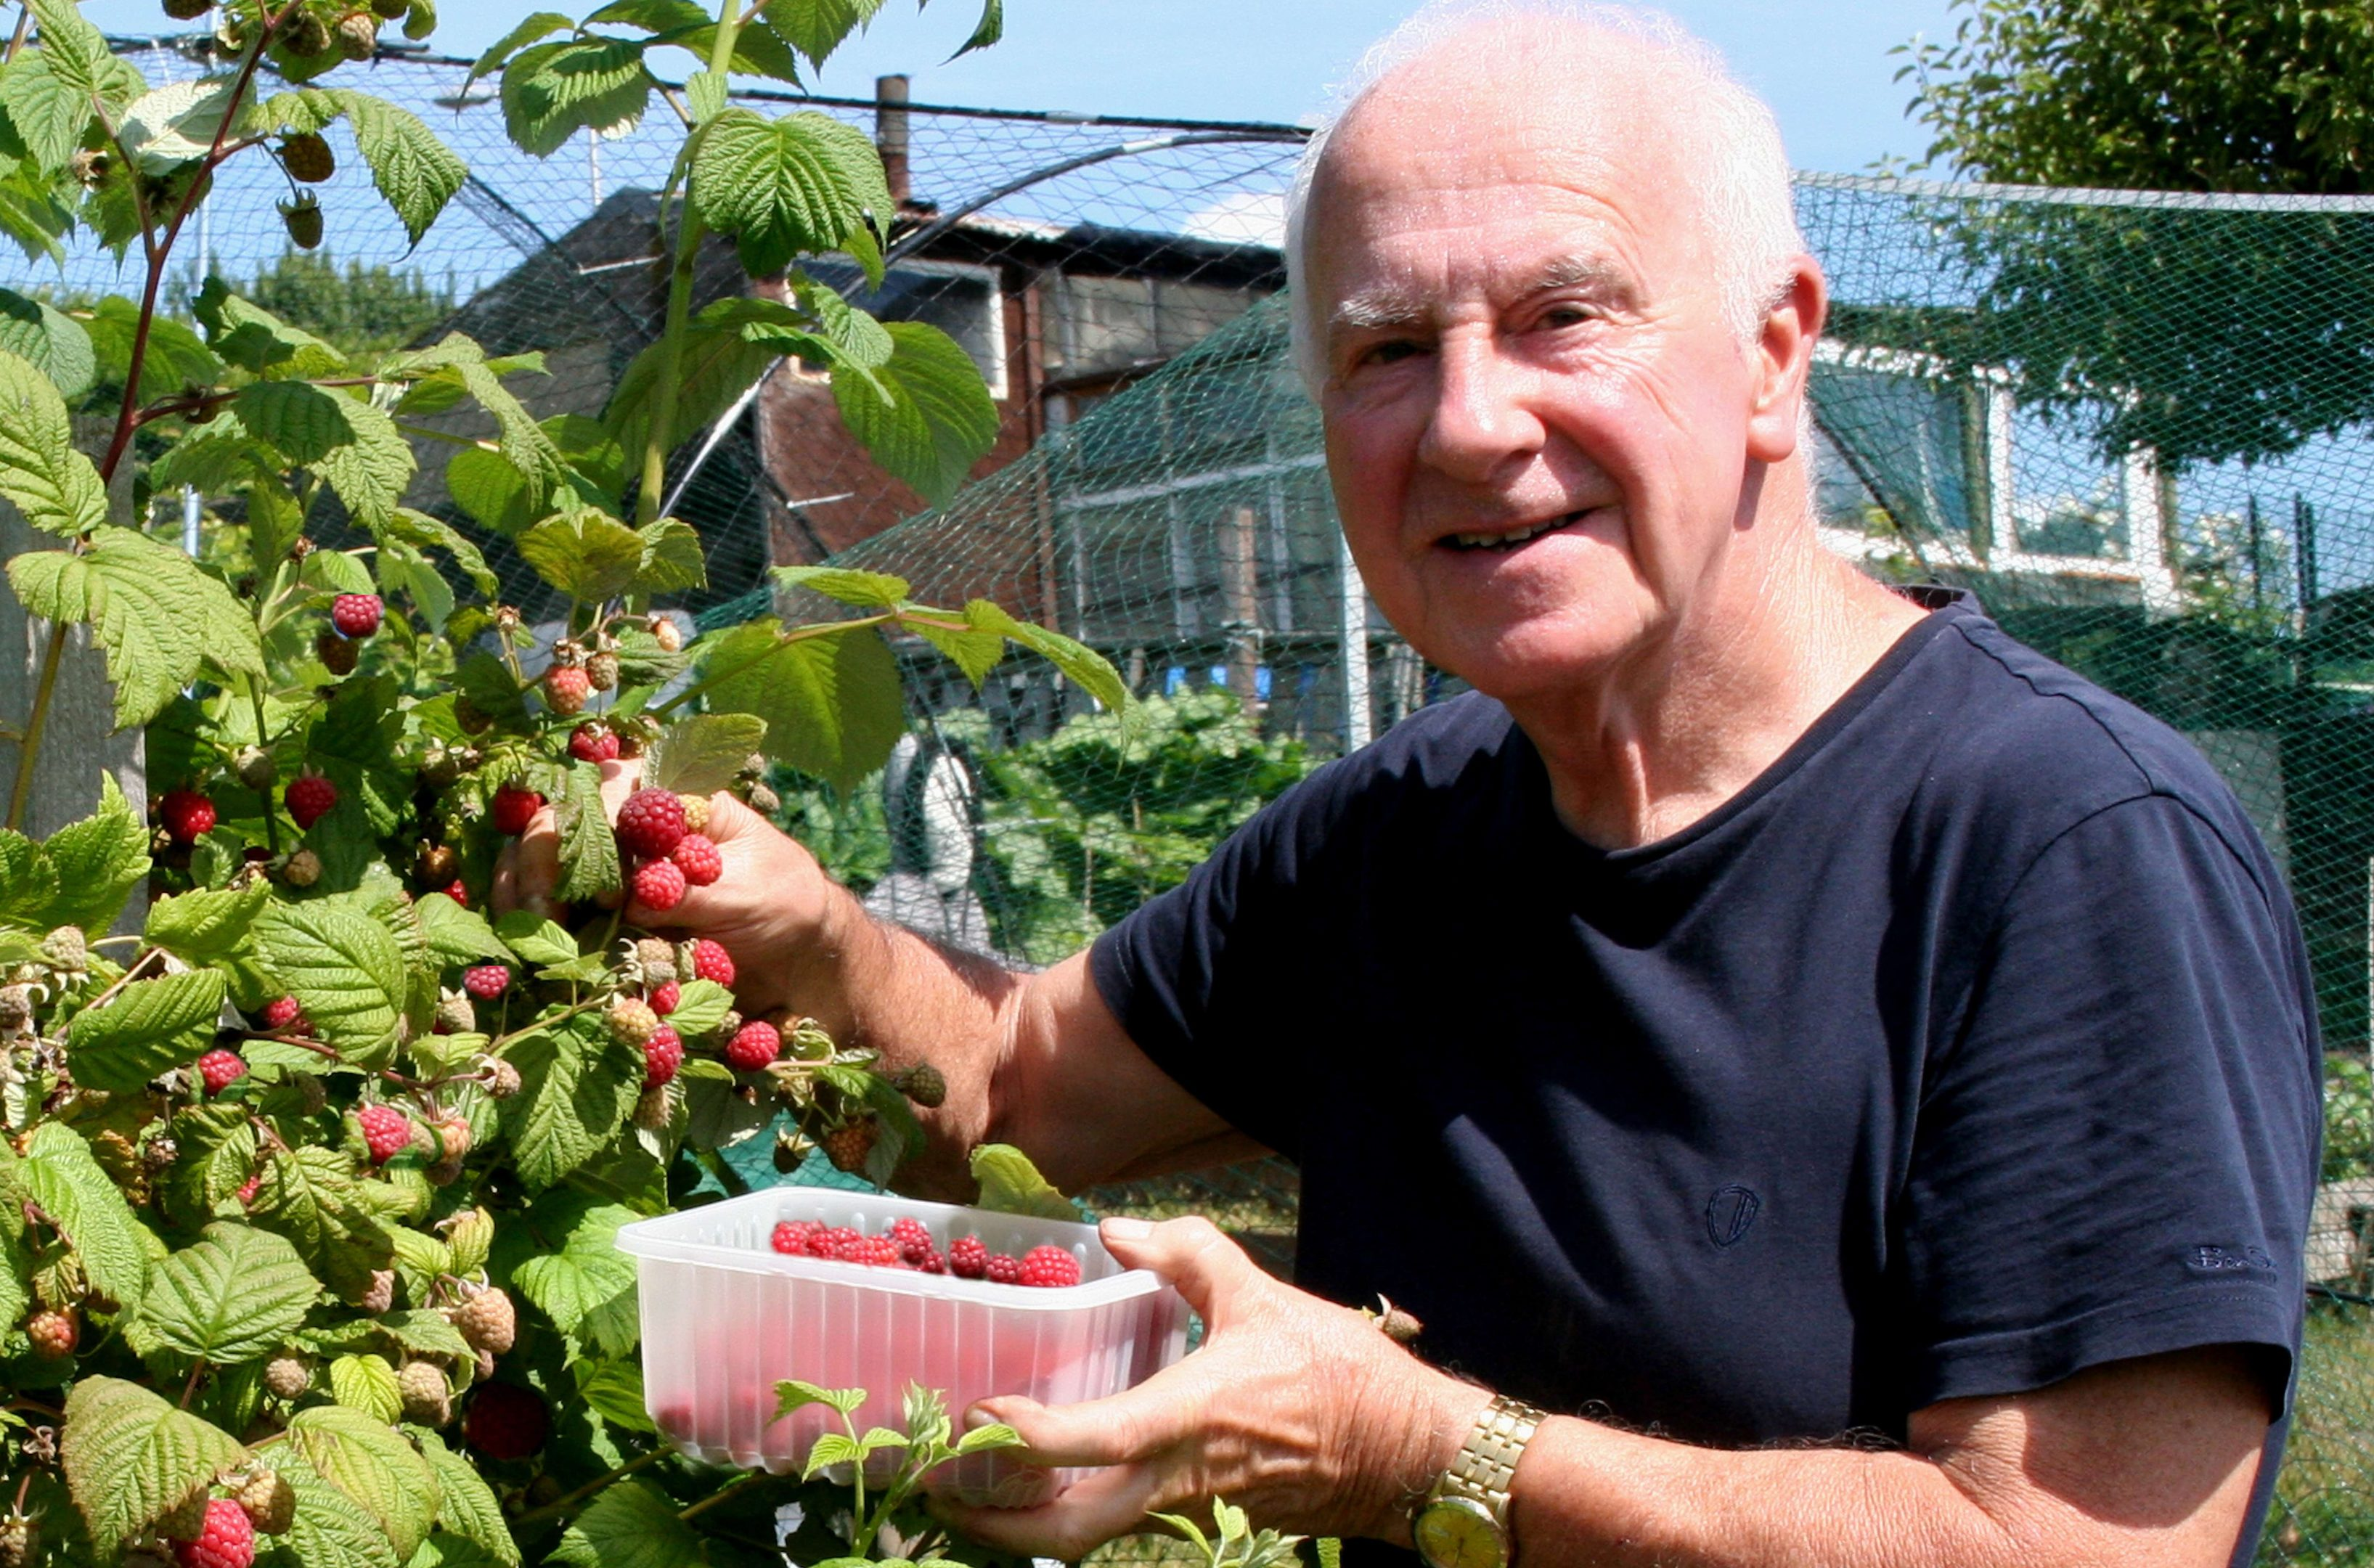 Picking a few Glen Fyne raspberries